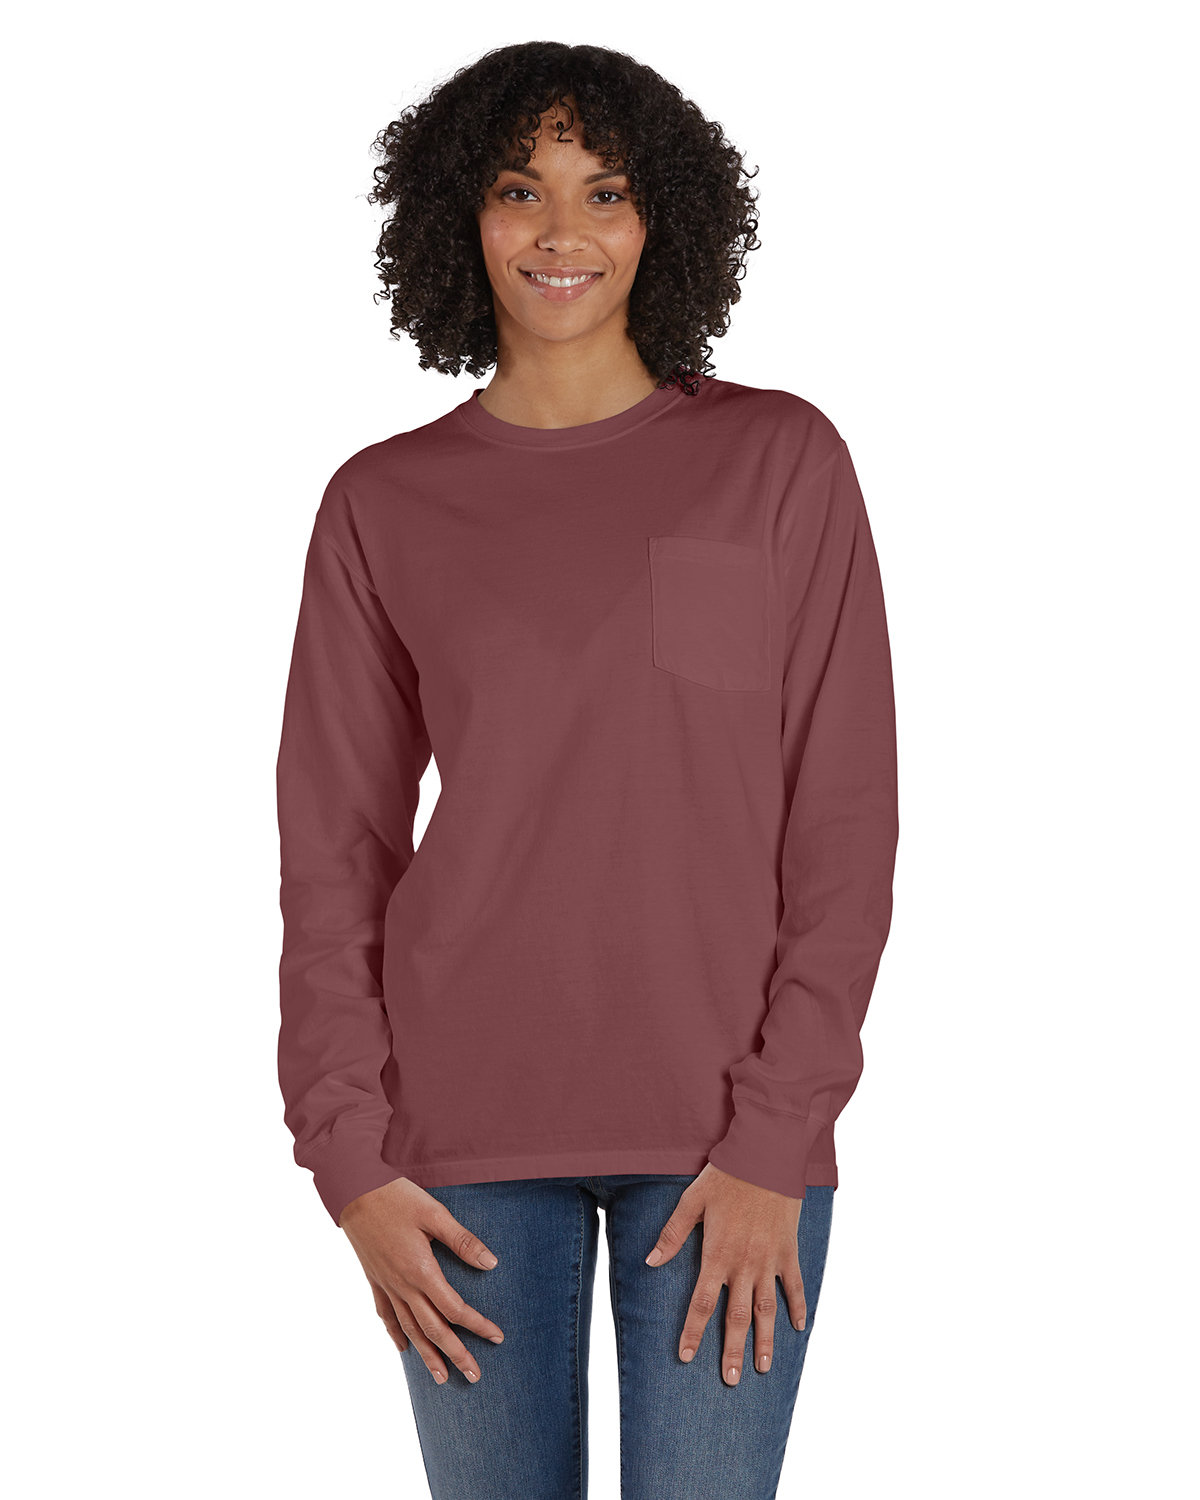 ComfortWash by Hanes Unisex Garment-Dyed Long-Sleeve T-Shirt with Pocket CAYENNE